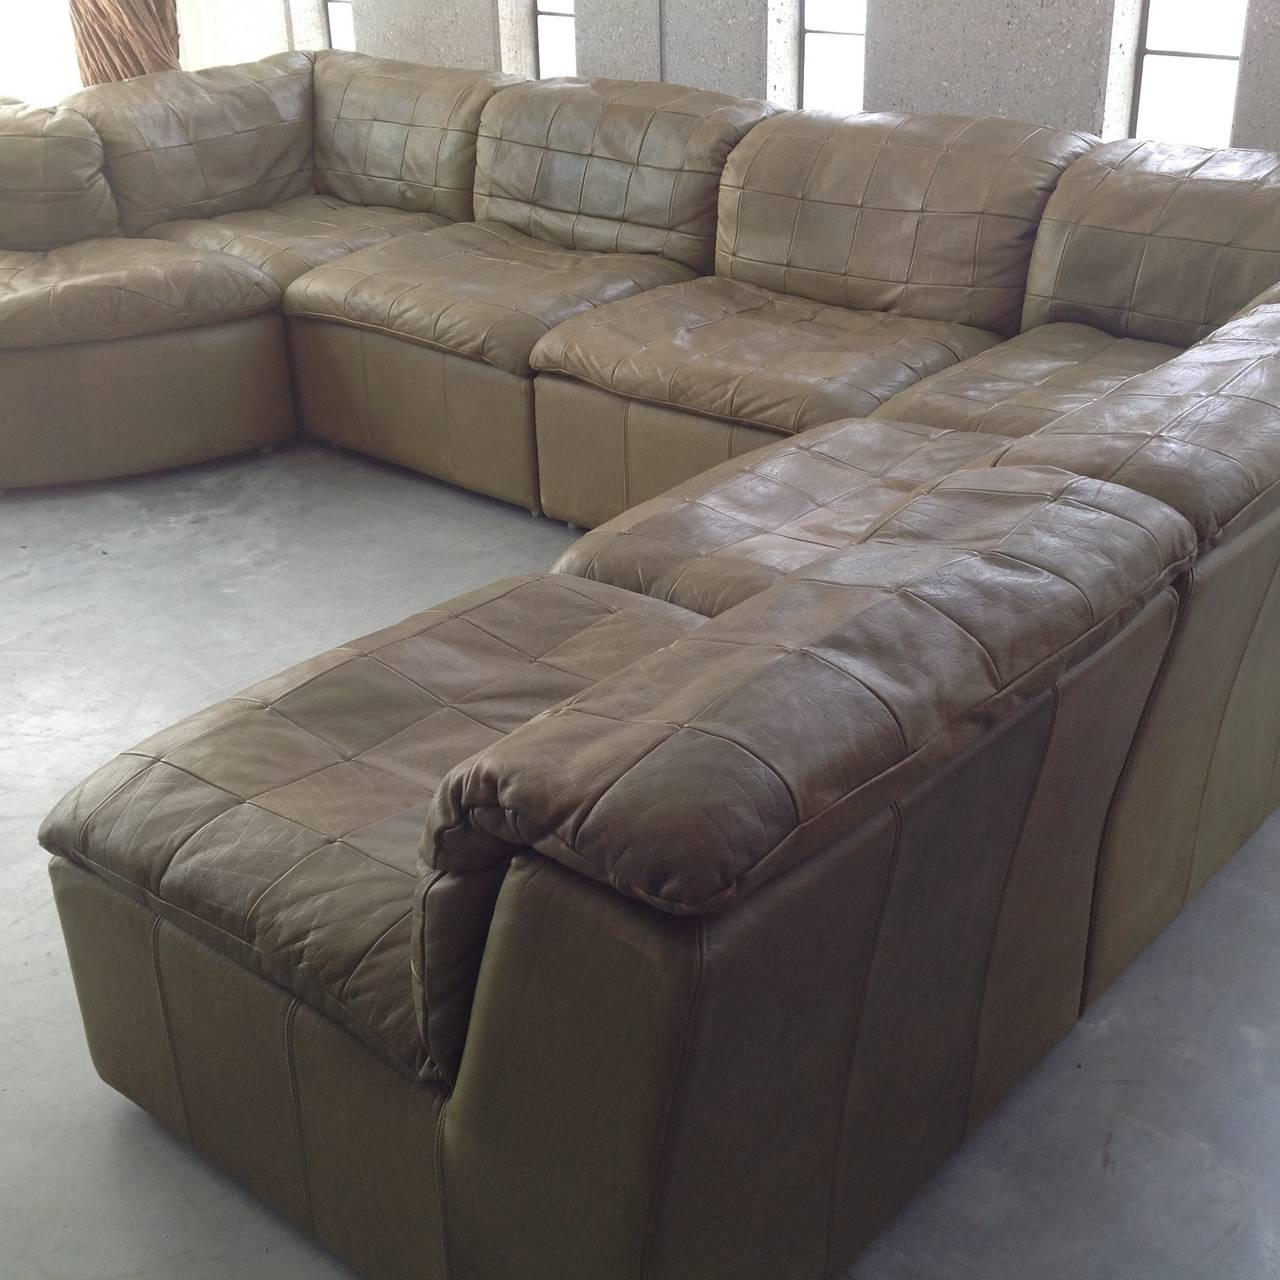 Sectional Sofa Olive Green: Patchwork Modular Sofa In Original Olive Green Leather